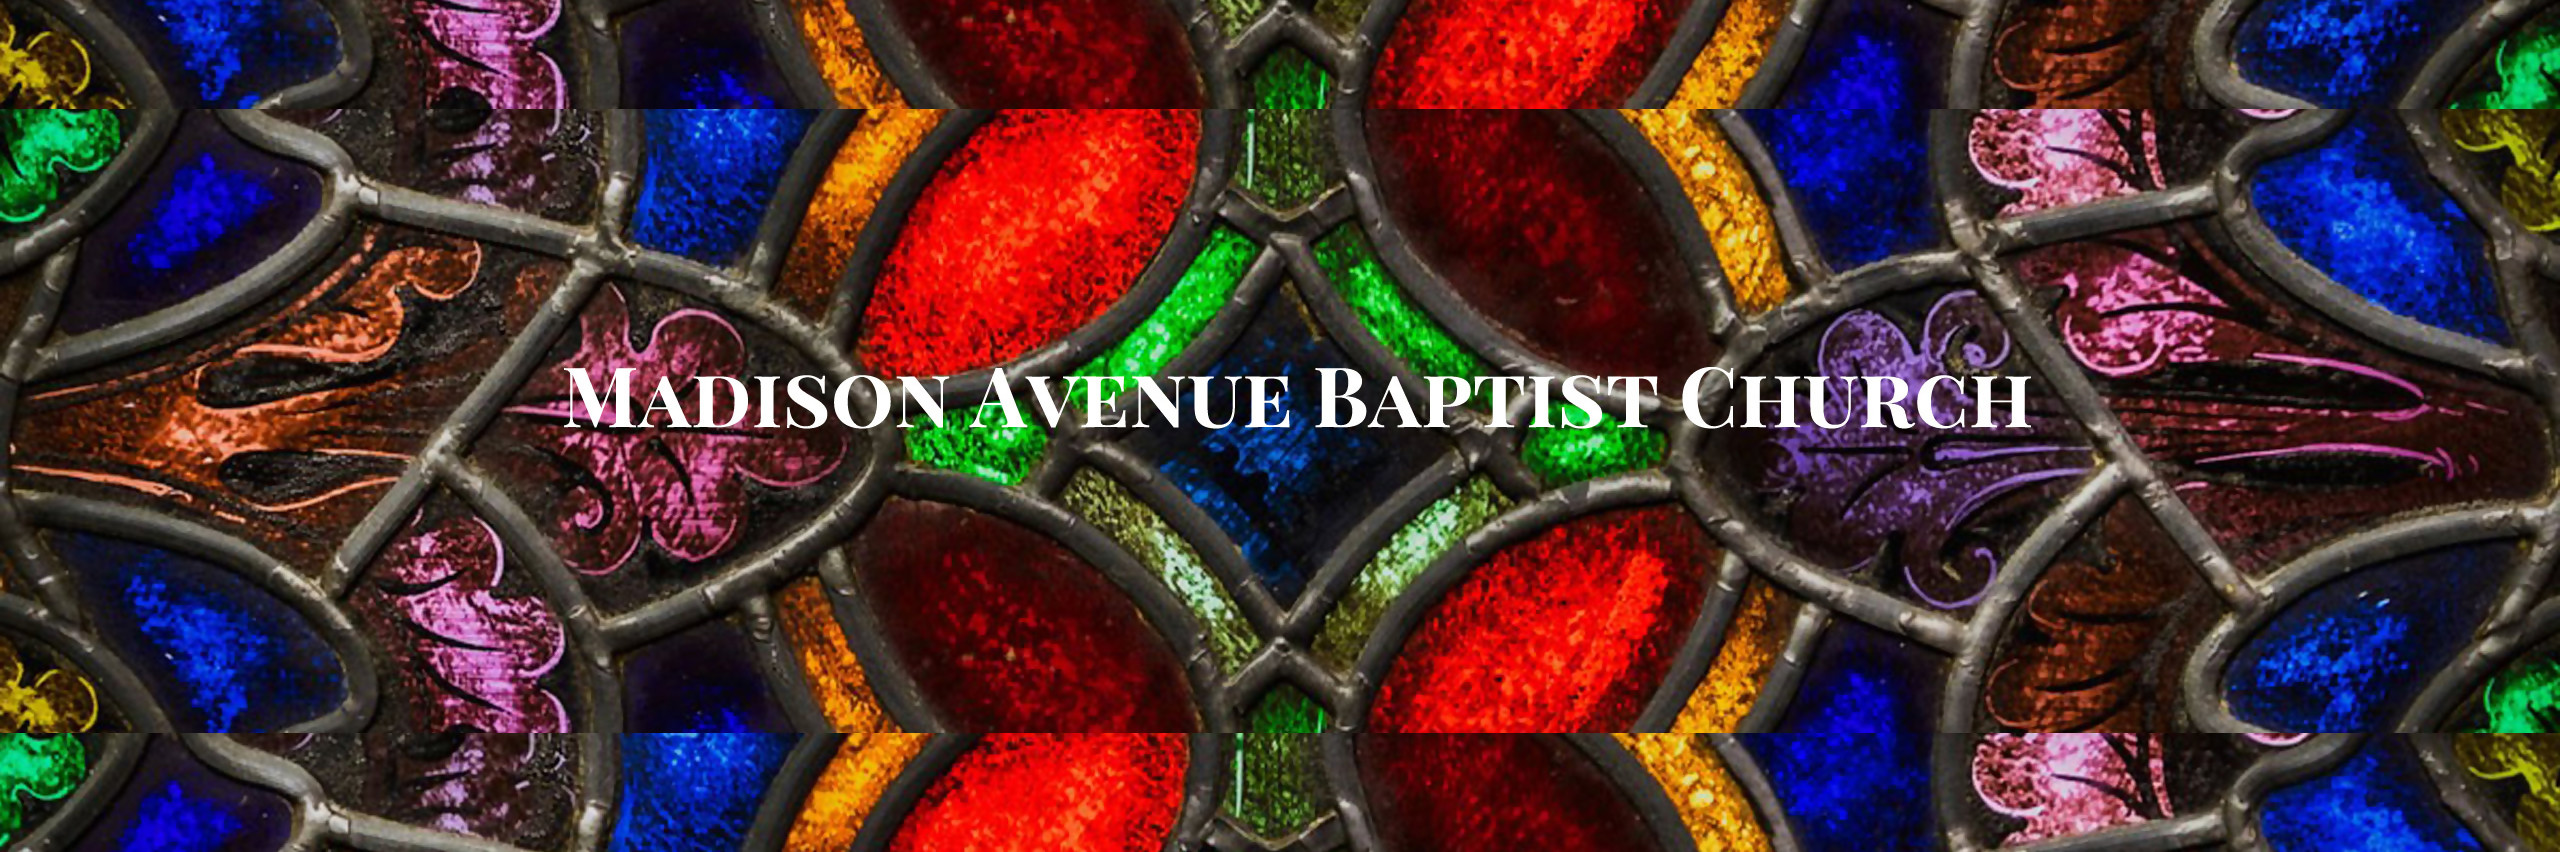 Madison Avenue Baptist Church NYC